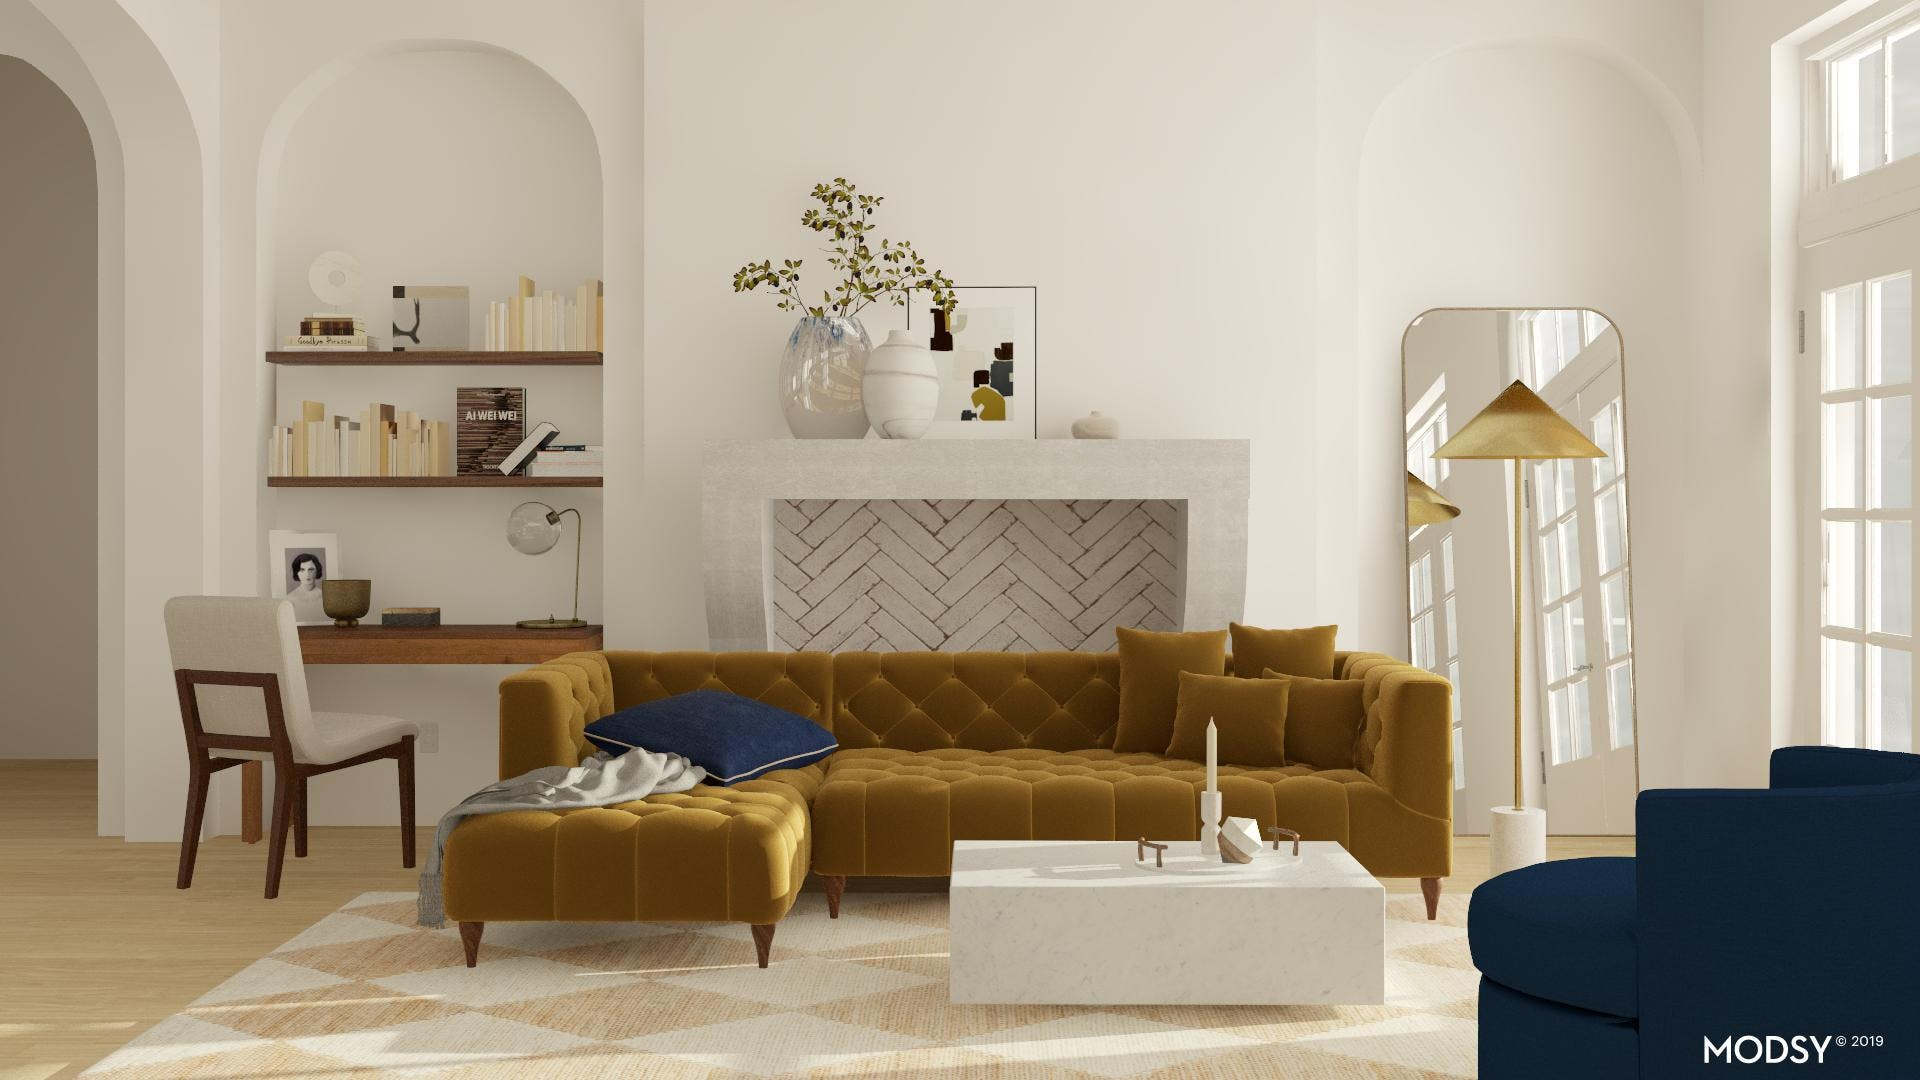 Chic Living Room with Mod Twist